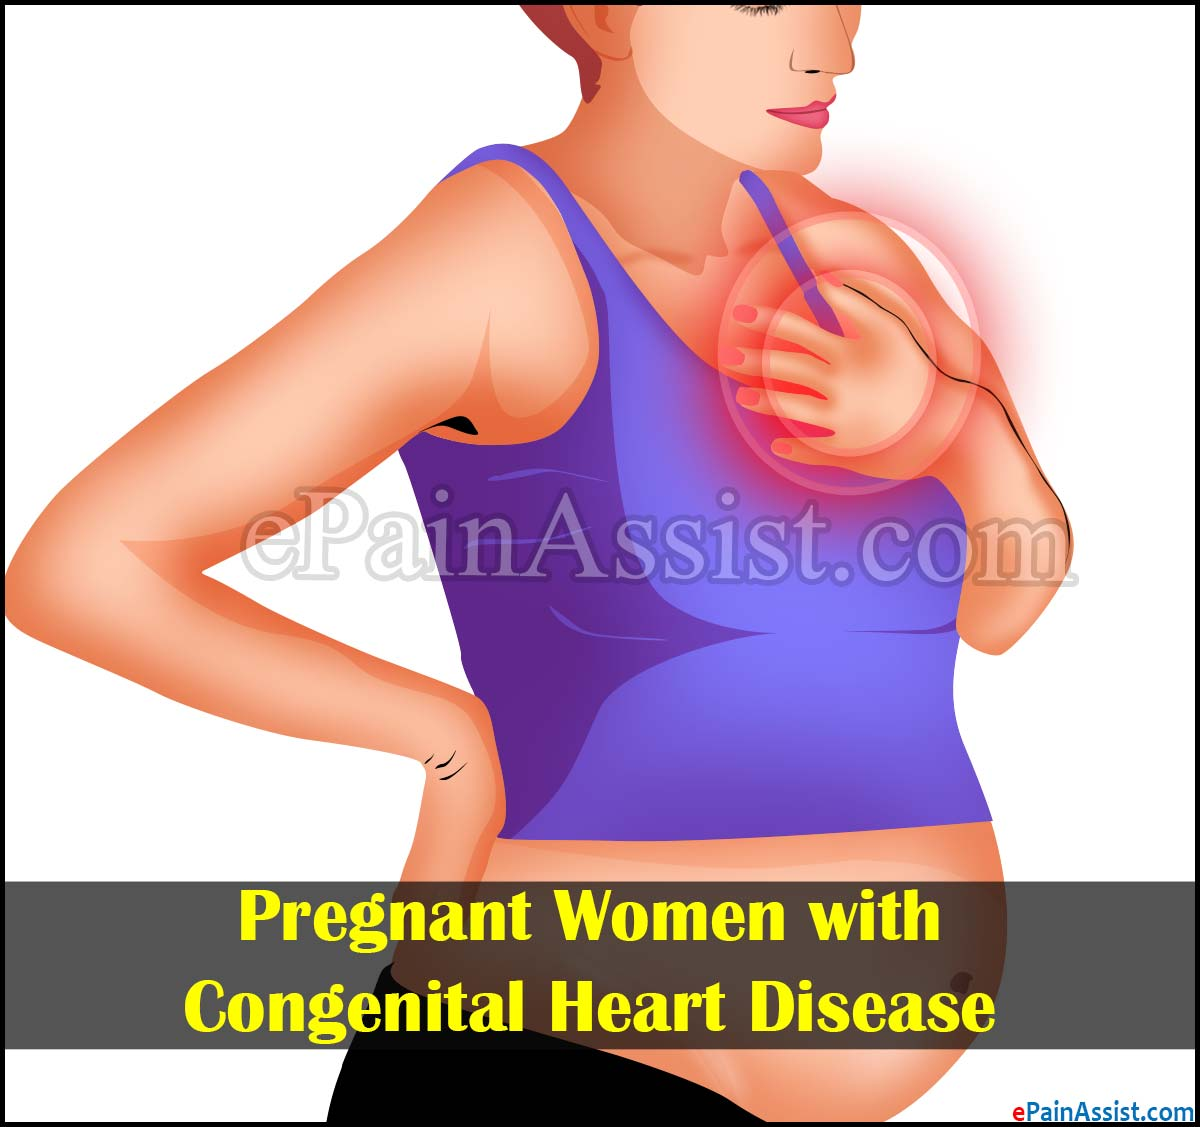 Pregnant Women with Congenital Heart Disease